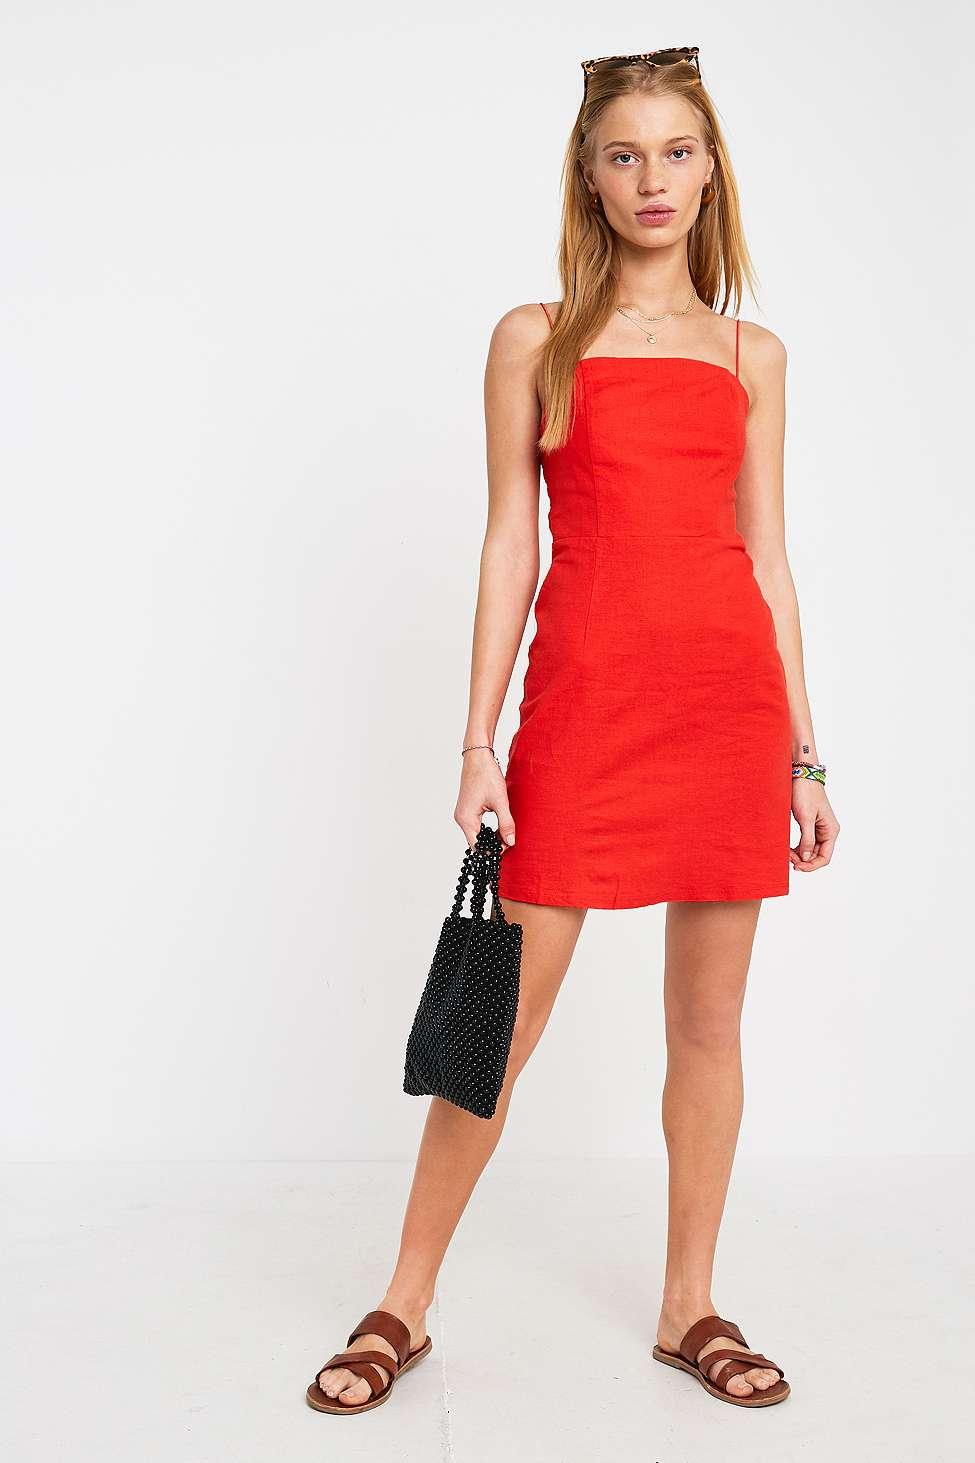 c29d54115f0 Urban Outfitters - Uo Colette Red Linen Mini Dress - Womens Xs - Lyst. View  fullscreen